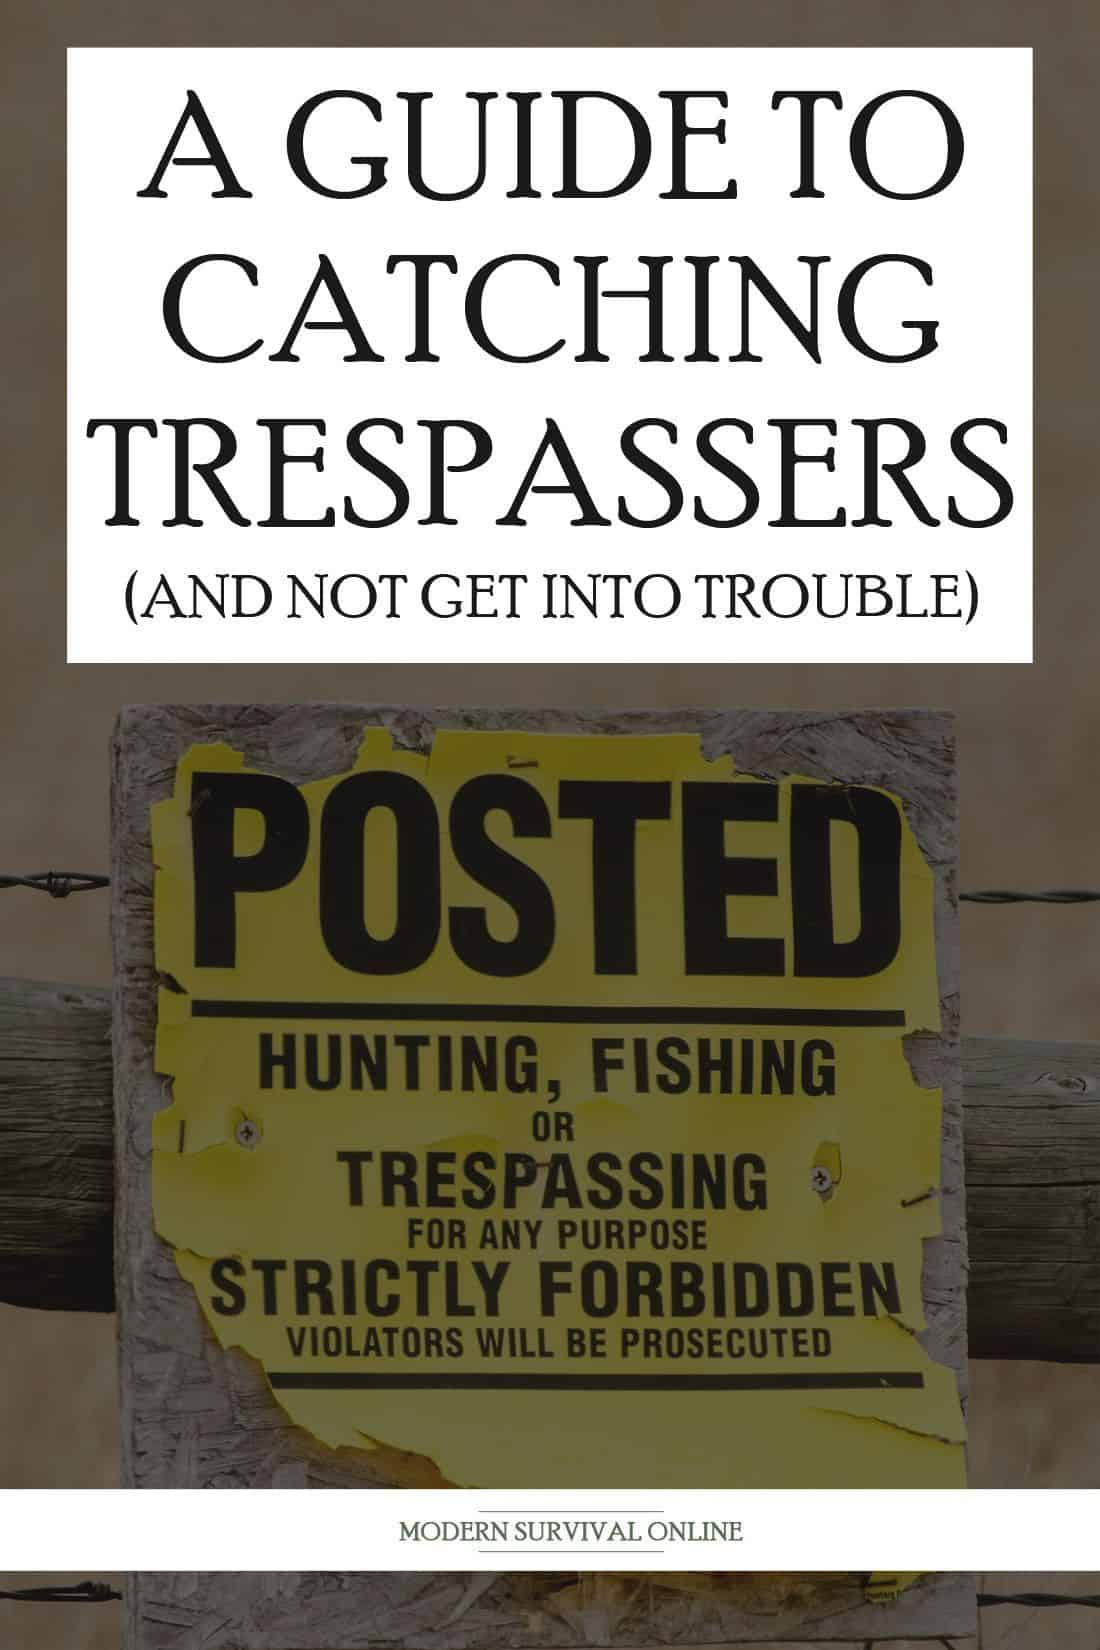 catching trespassers pinterest